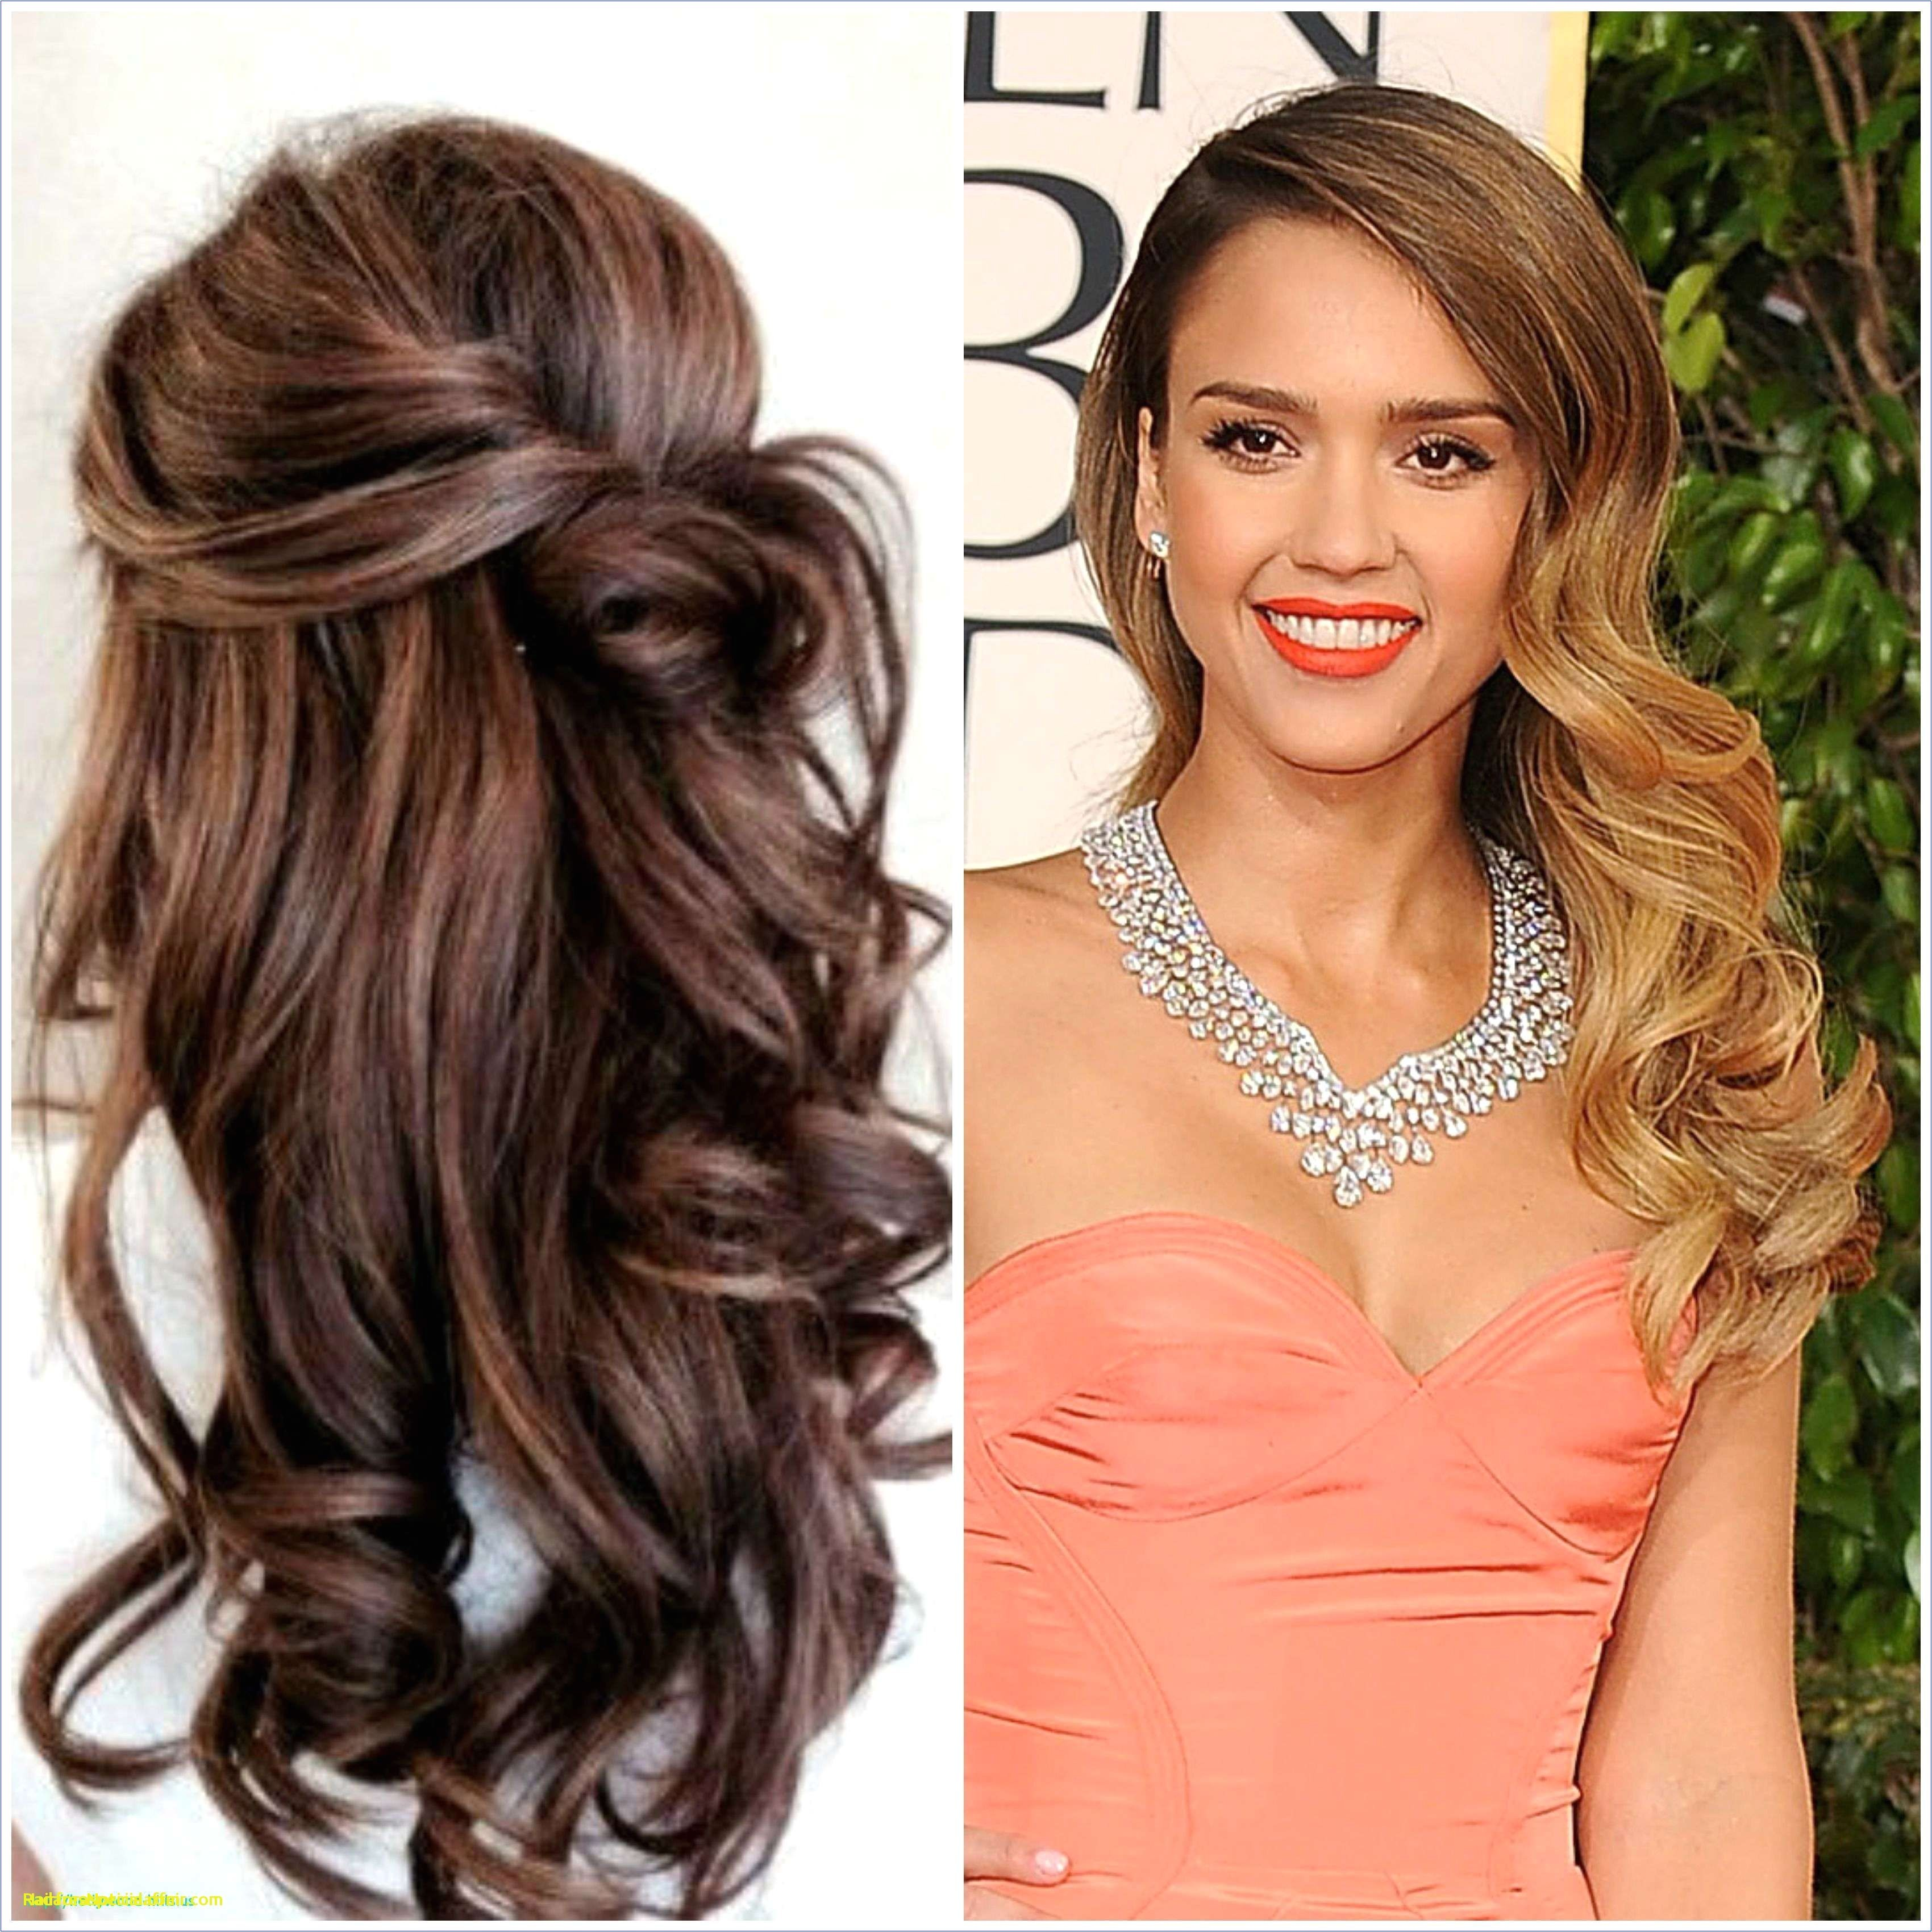 14 Best Easy Braided Hairstyles for Long Hair